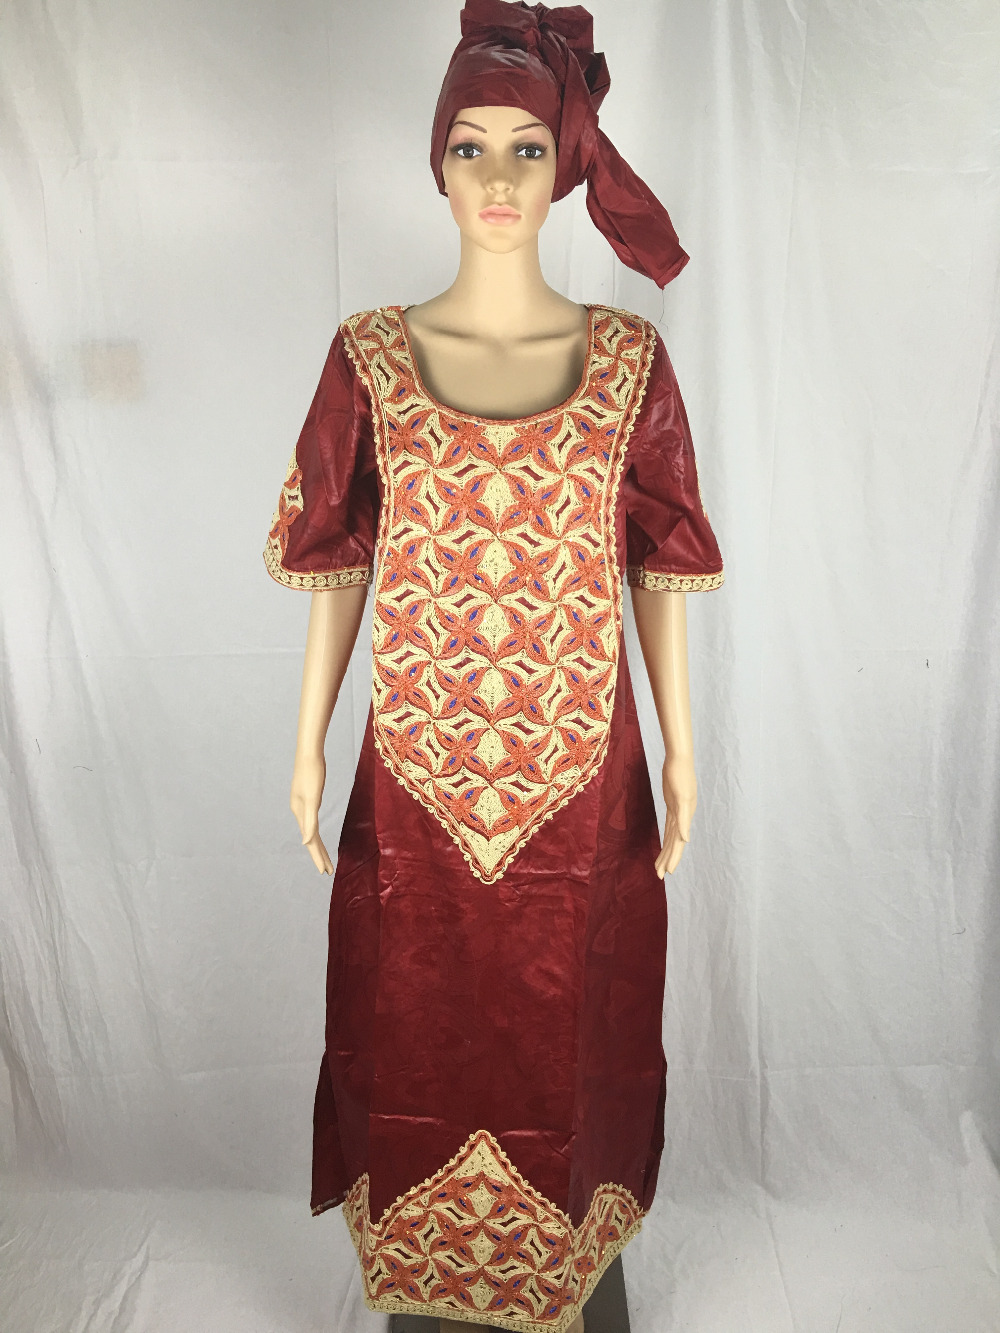 Free shipping 2016 new fashion design african bazin riche material embroidery dress 1.6 long hot(China (Mainland))